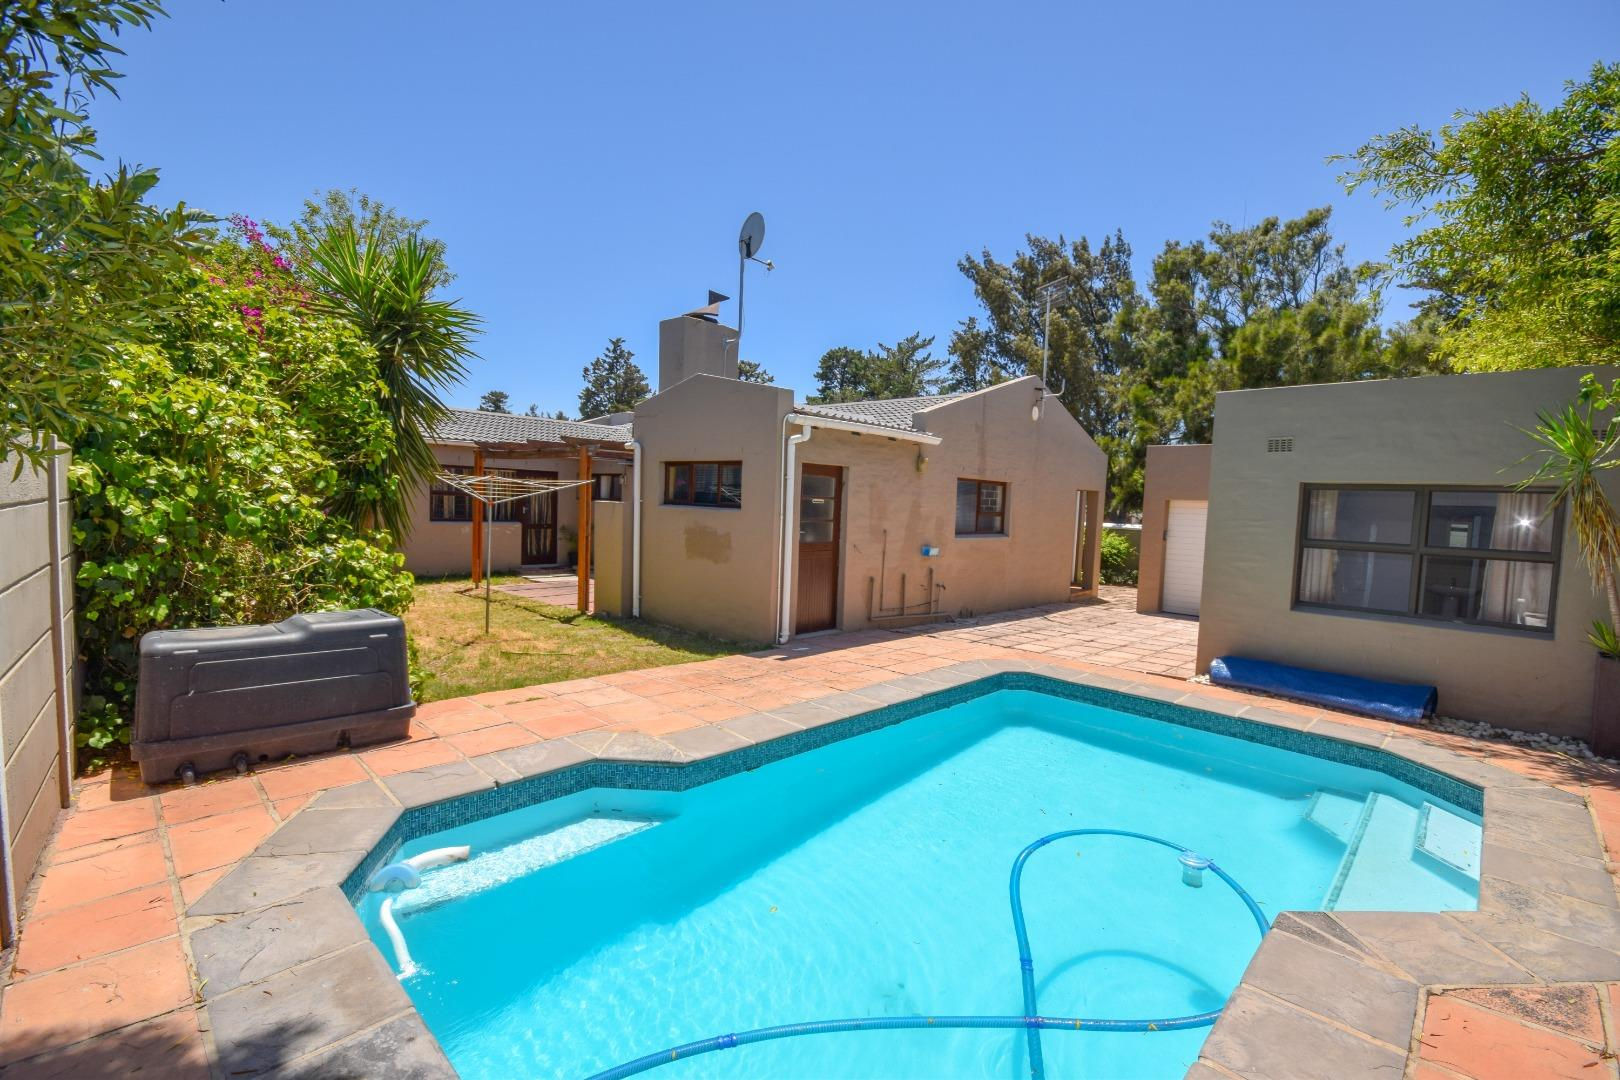 4 Bedroom  House for Sale in Goodwood - Western Cape